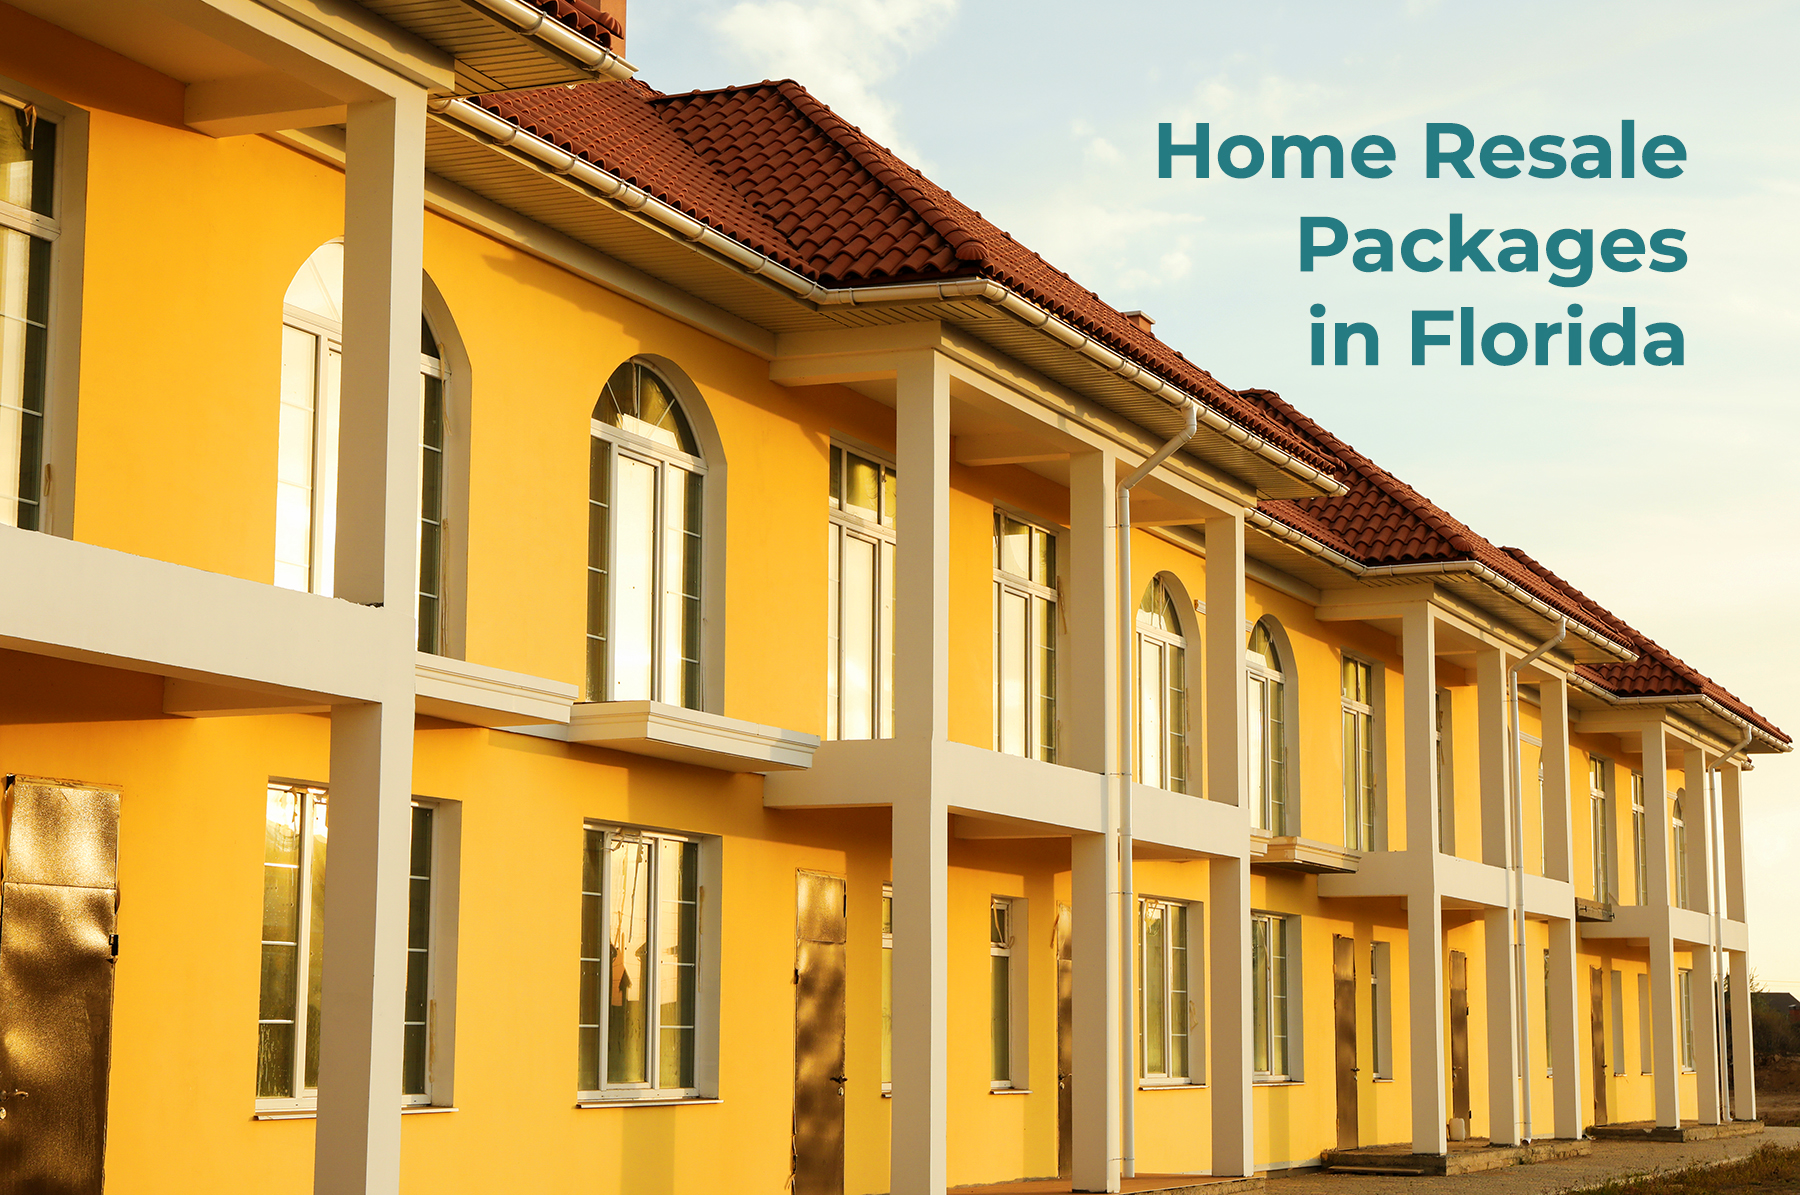 HOME RESALE PACKAGES IN FLORIDA